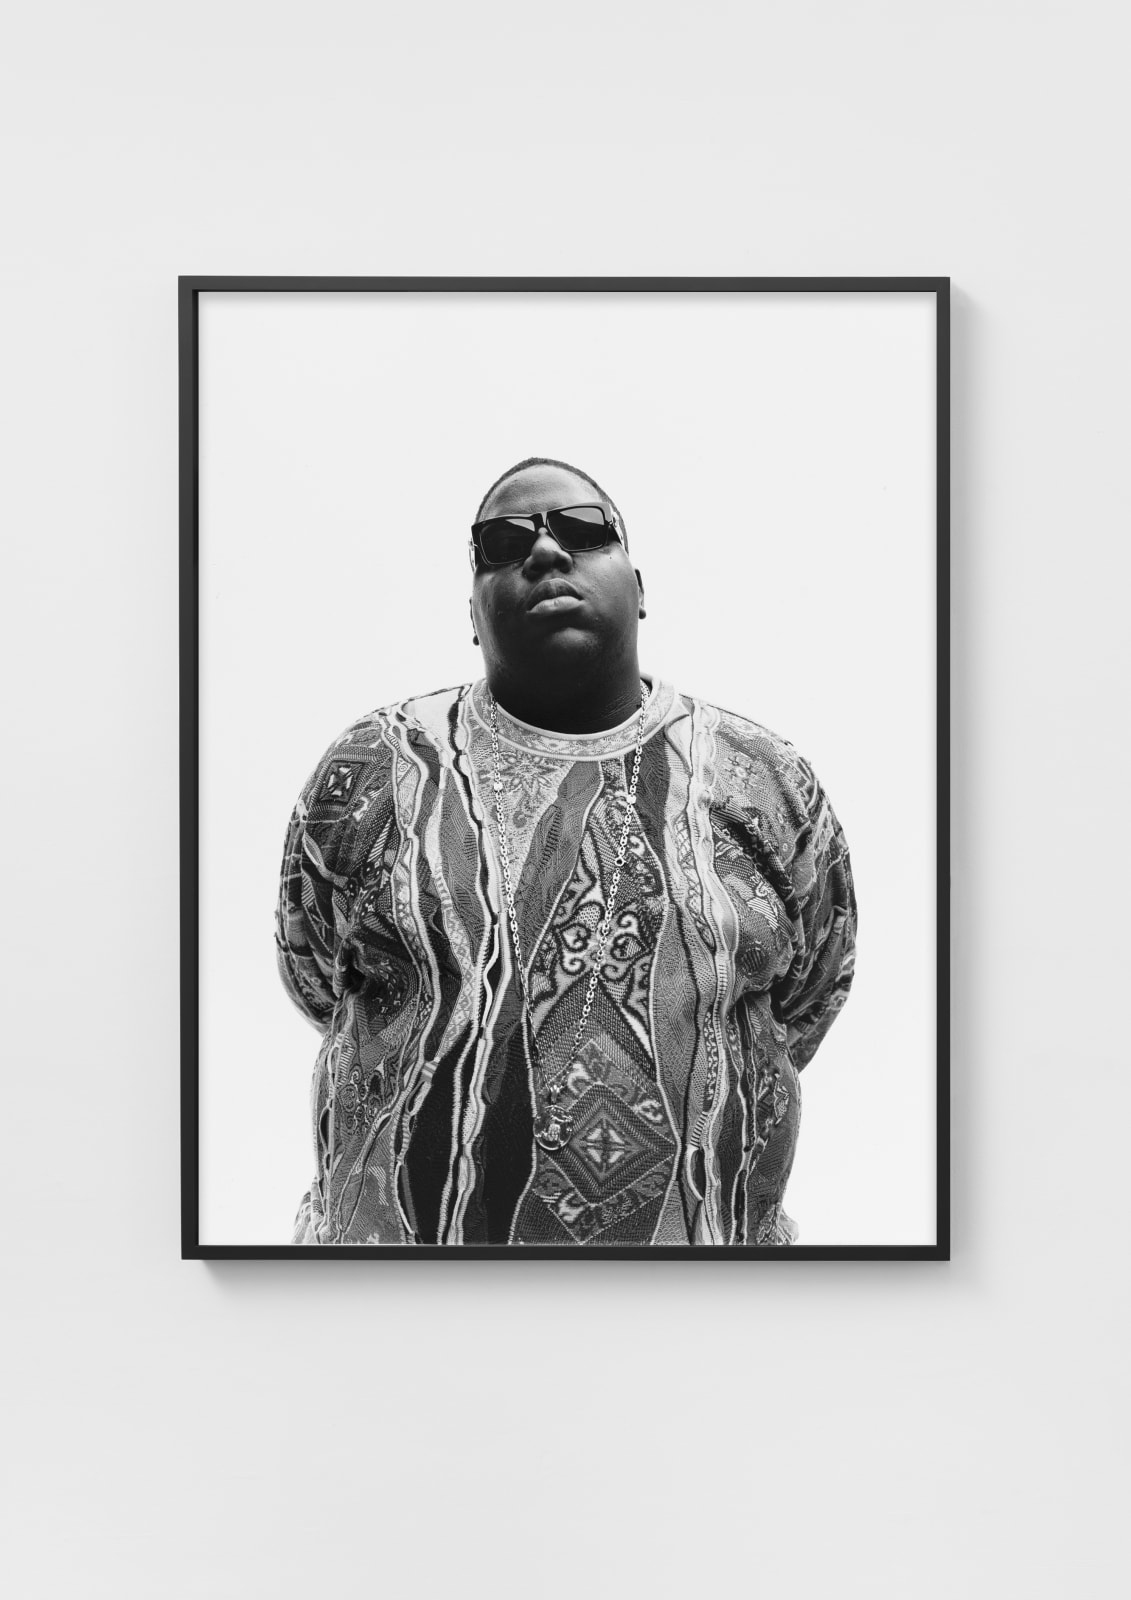 Christopher Wallace (Biggie), 1996 (II) Gelatin Silver print mounted on aluminum, maple frame, museum glass 59 x 46 cm 23 1/4 x 18 1/8 in Edition 4/10 plus 2 AP EUR 8.000 excluding taxes and shipping 127 x 100 cm 50 x 39 3/8 in Edition 4/10 + 2 AP EUR 20.000 excluding taxes and shipping